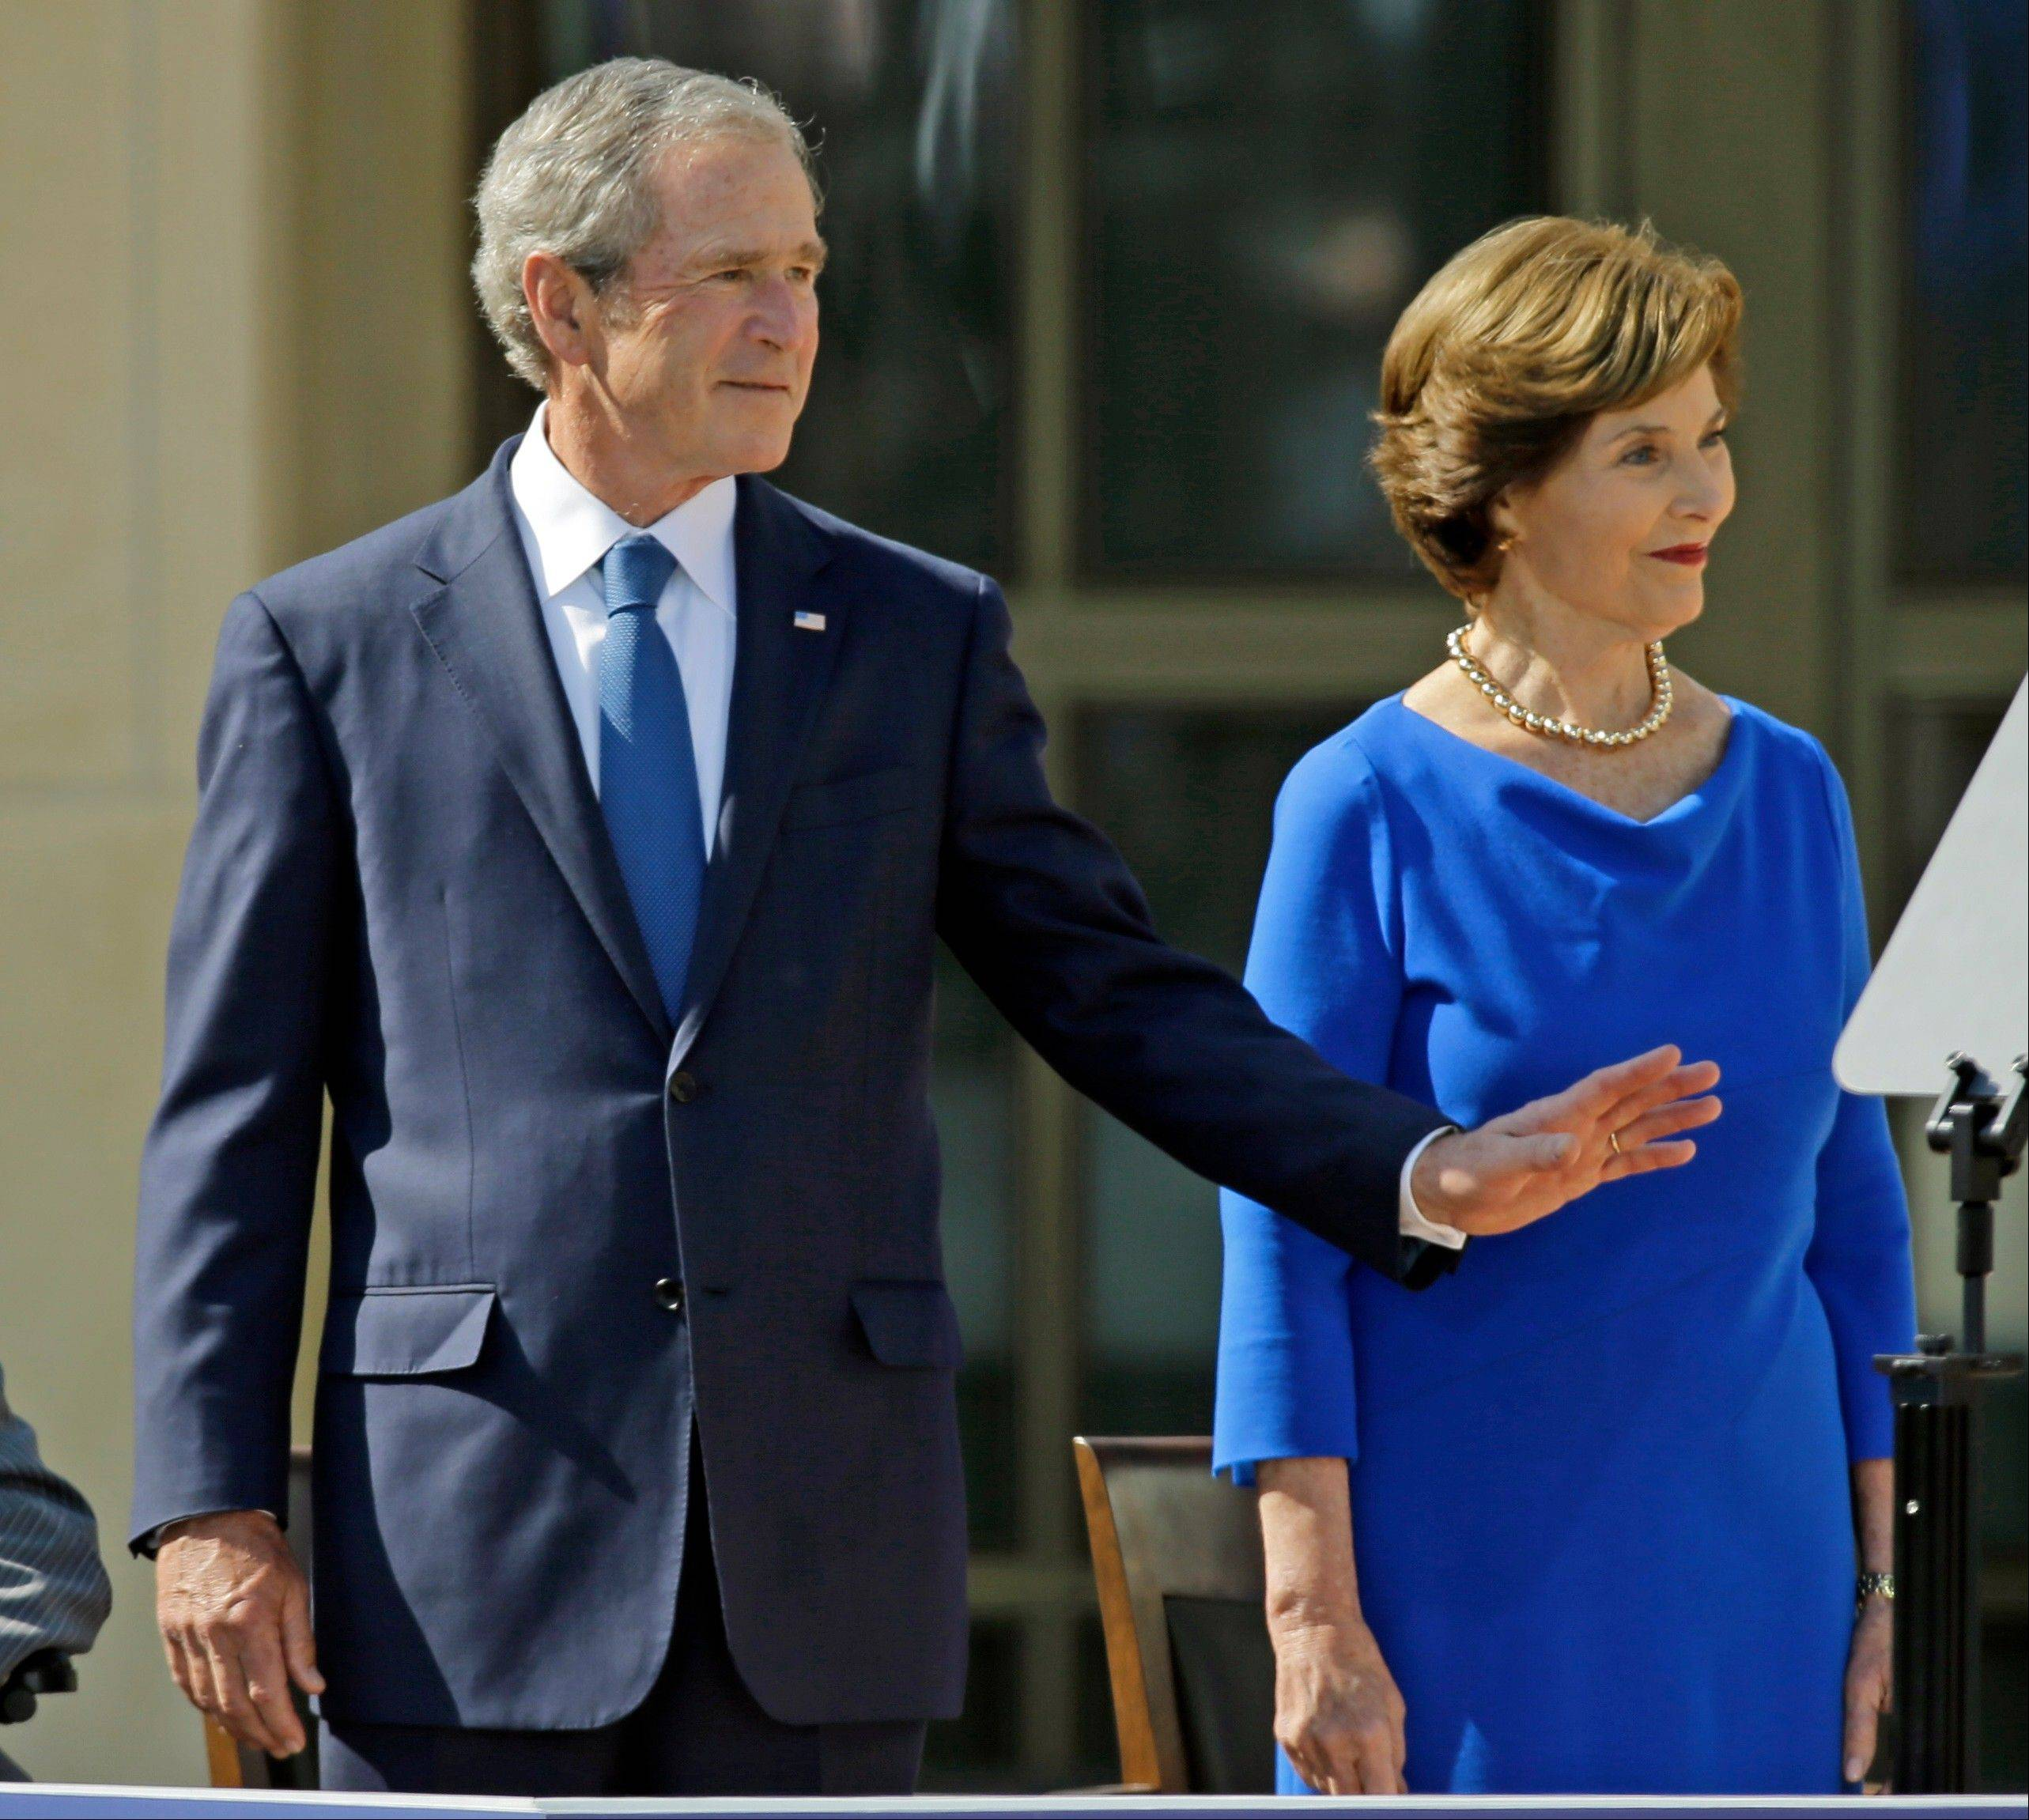 Former President George W. Bush and his wife, former first lady Laura Bush, arrive the dedication of the George W. Bush Presidential Center, Thursday, April 25, 2013, in Dallas.